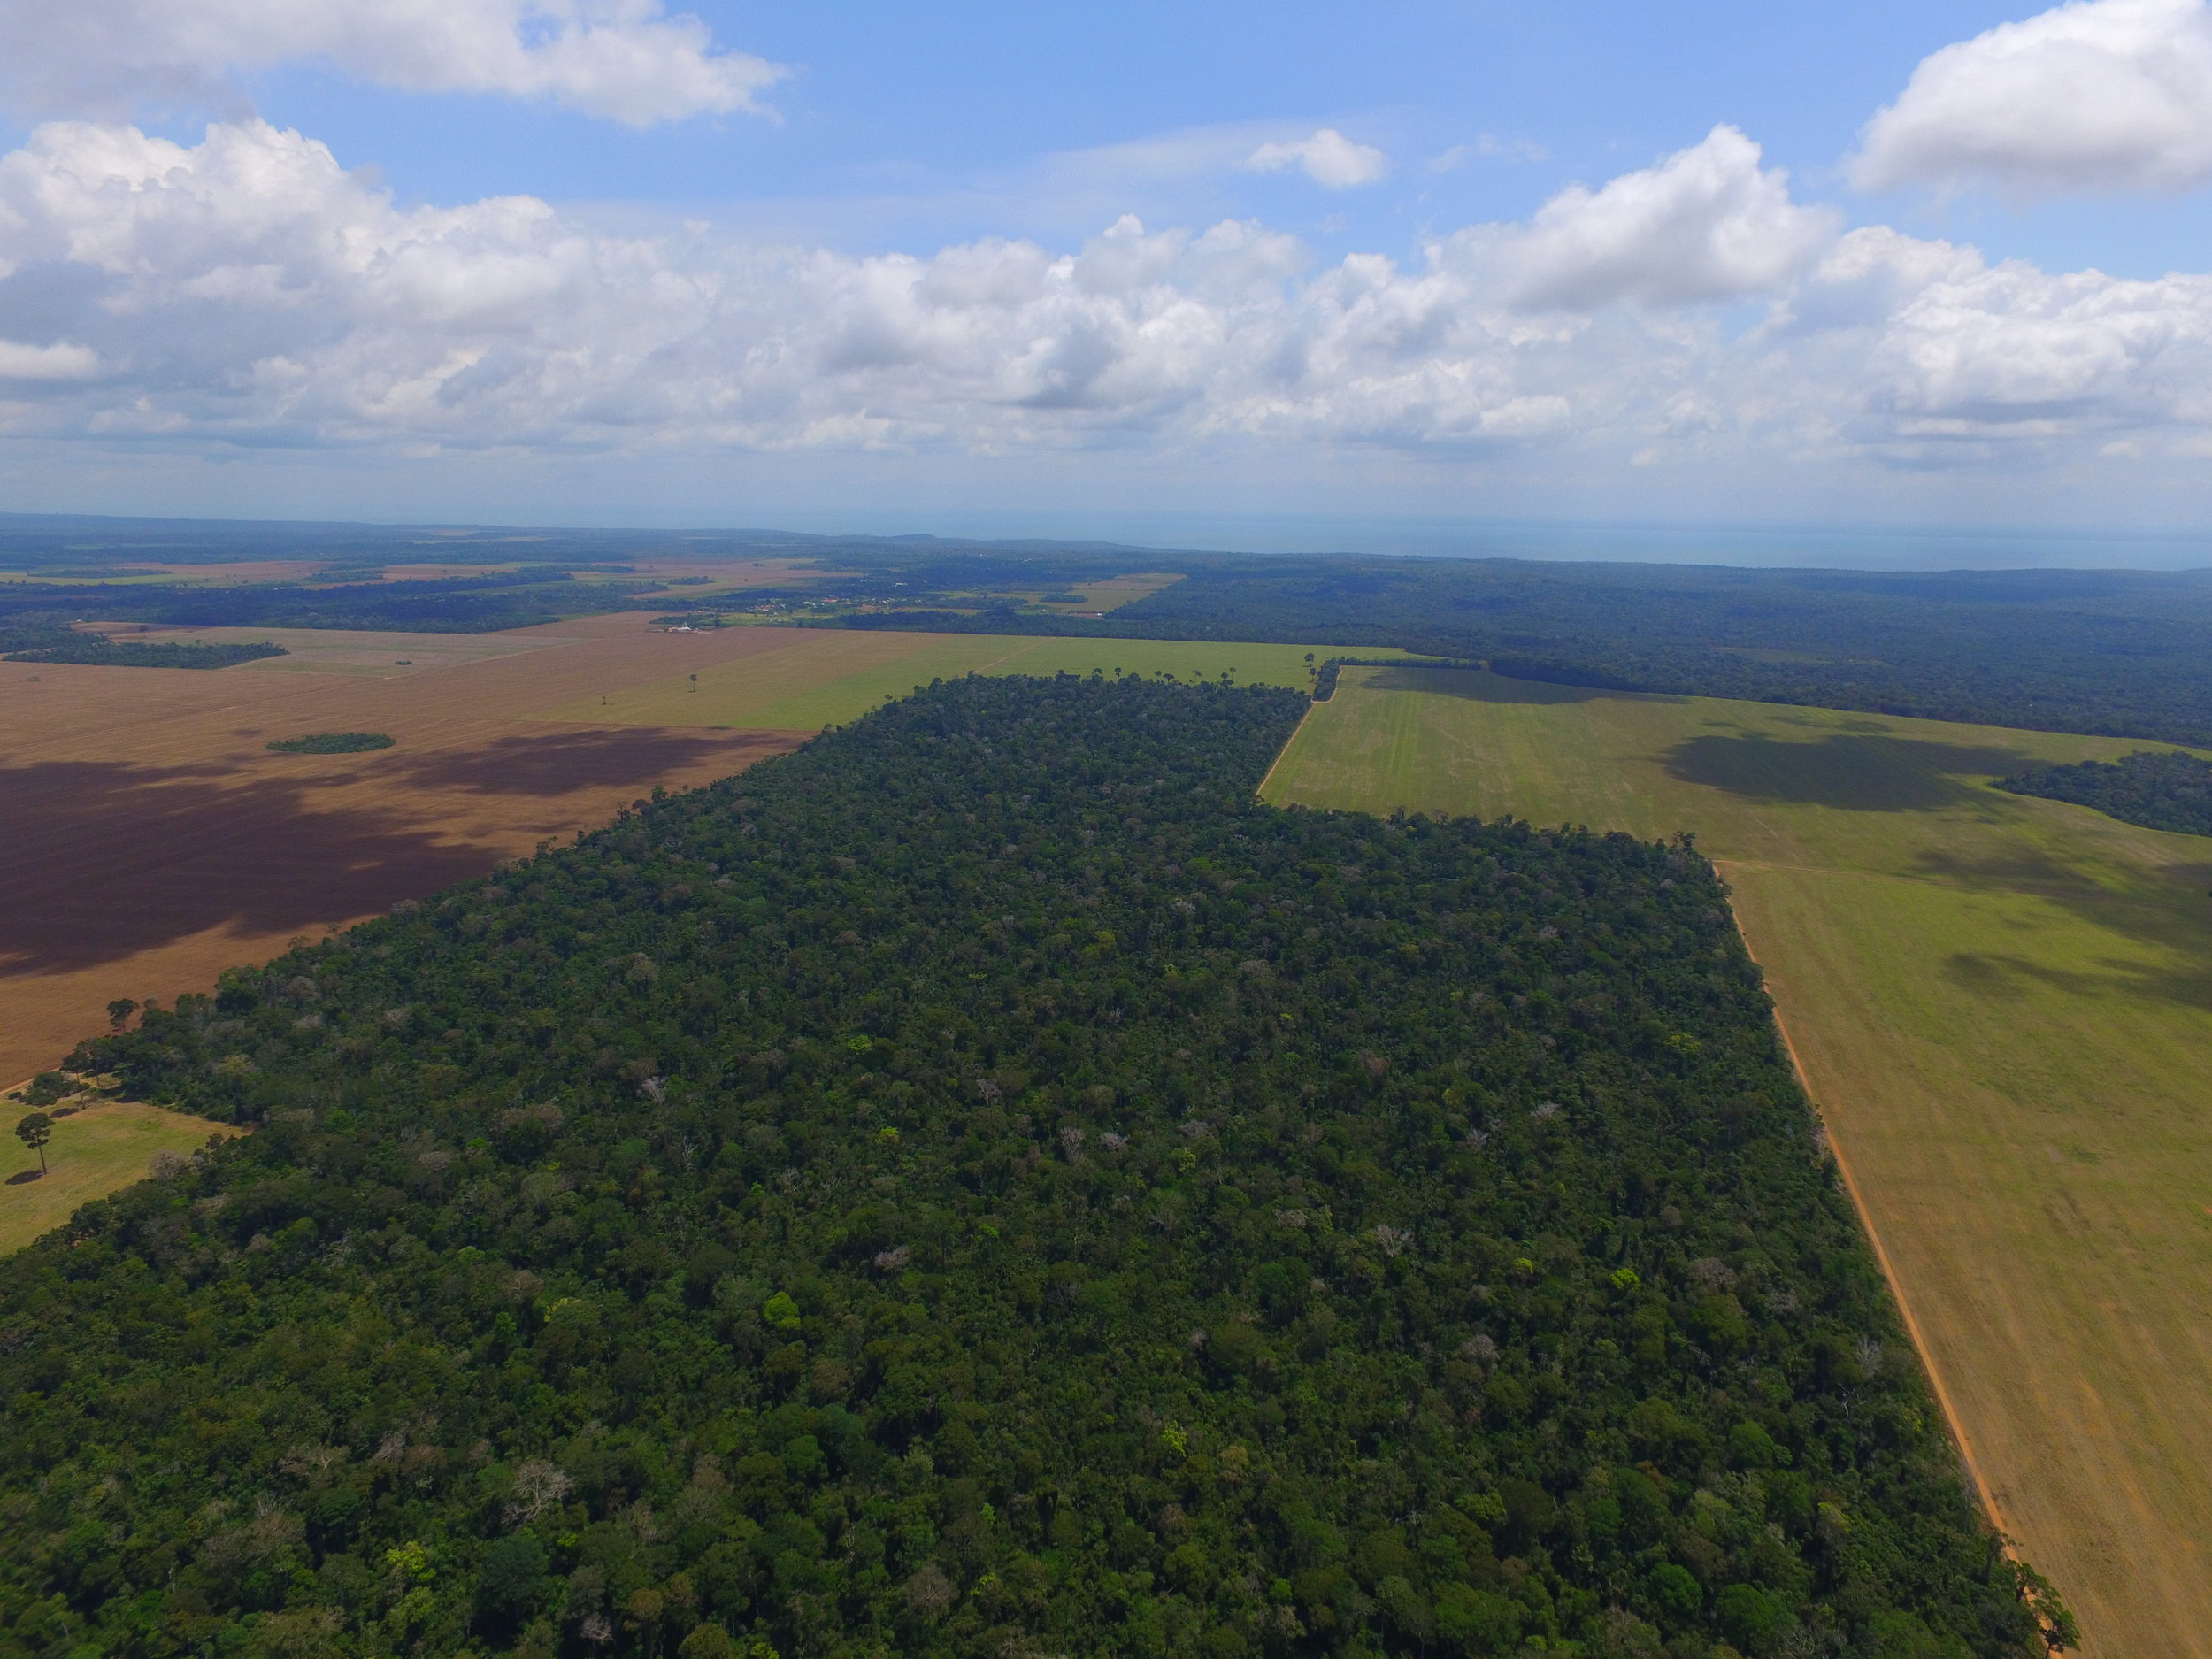 Plantation of Romualdo Rech in Santarém, Pará, Brazil, showing area cultivated for soy production (brown) and adjacent area reforested under judicial mandate. Photo by Marcos Colón and Bruno Erlan, ©Beyond Fordlândia, 2017.